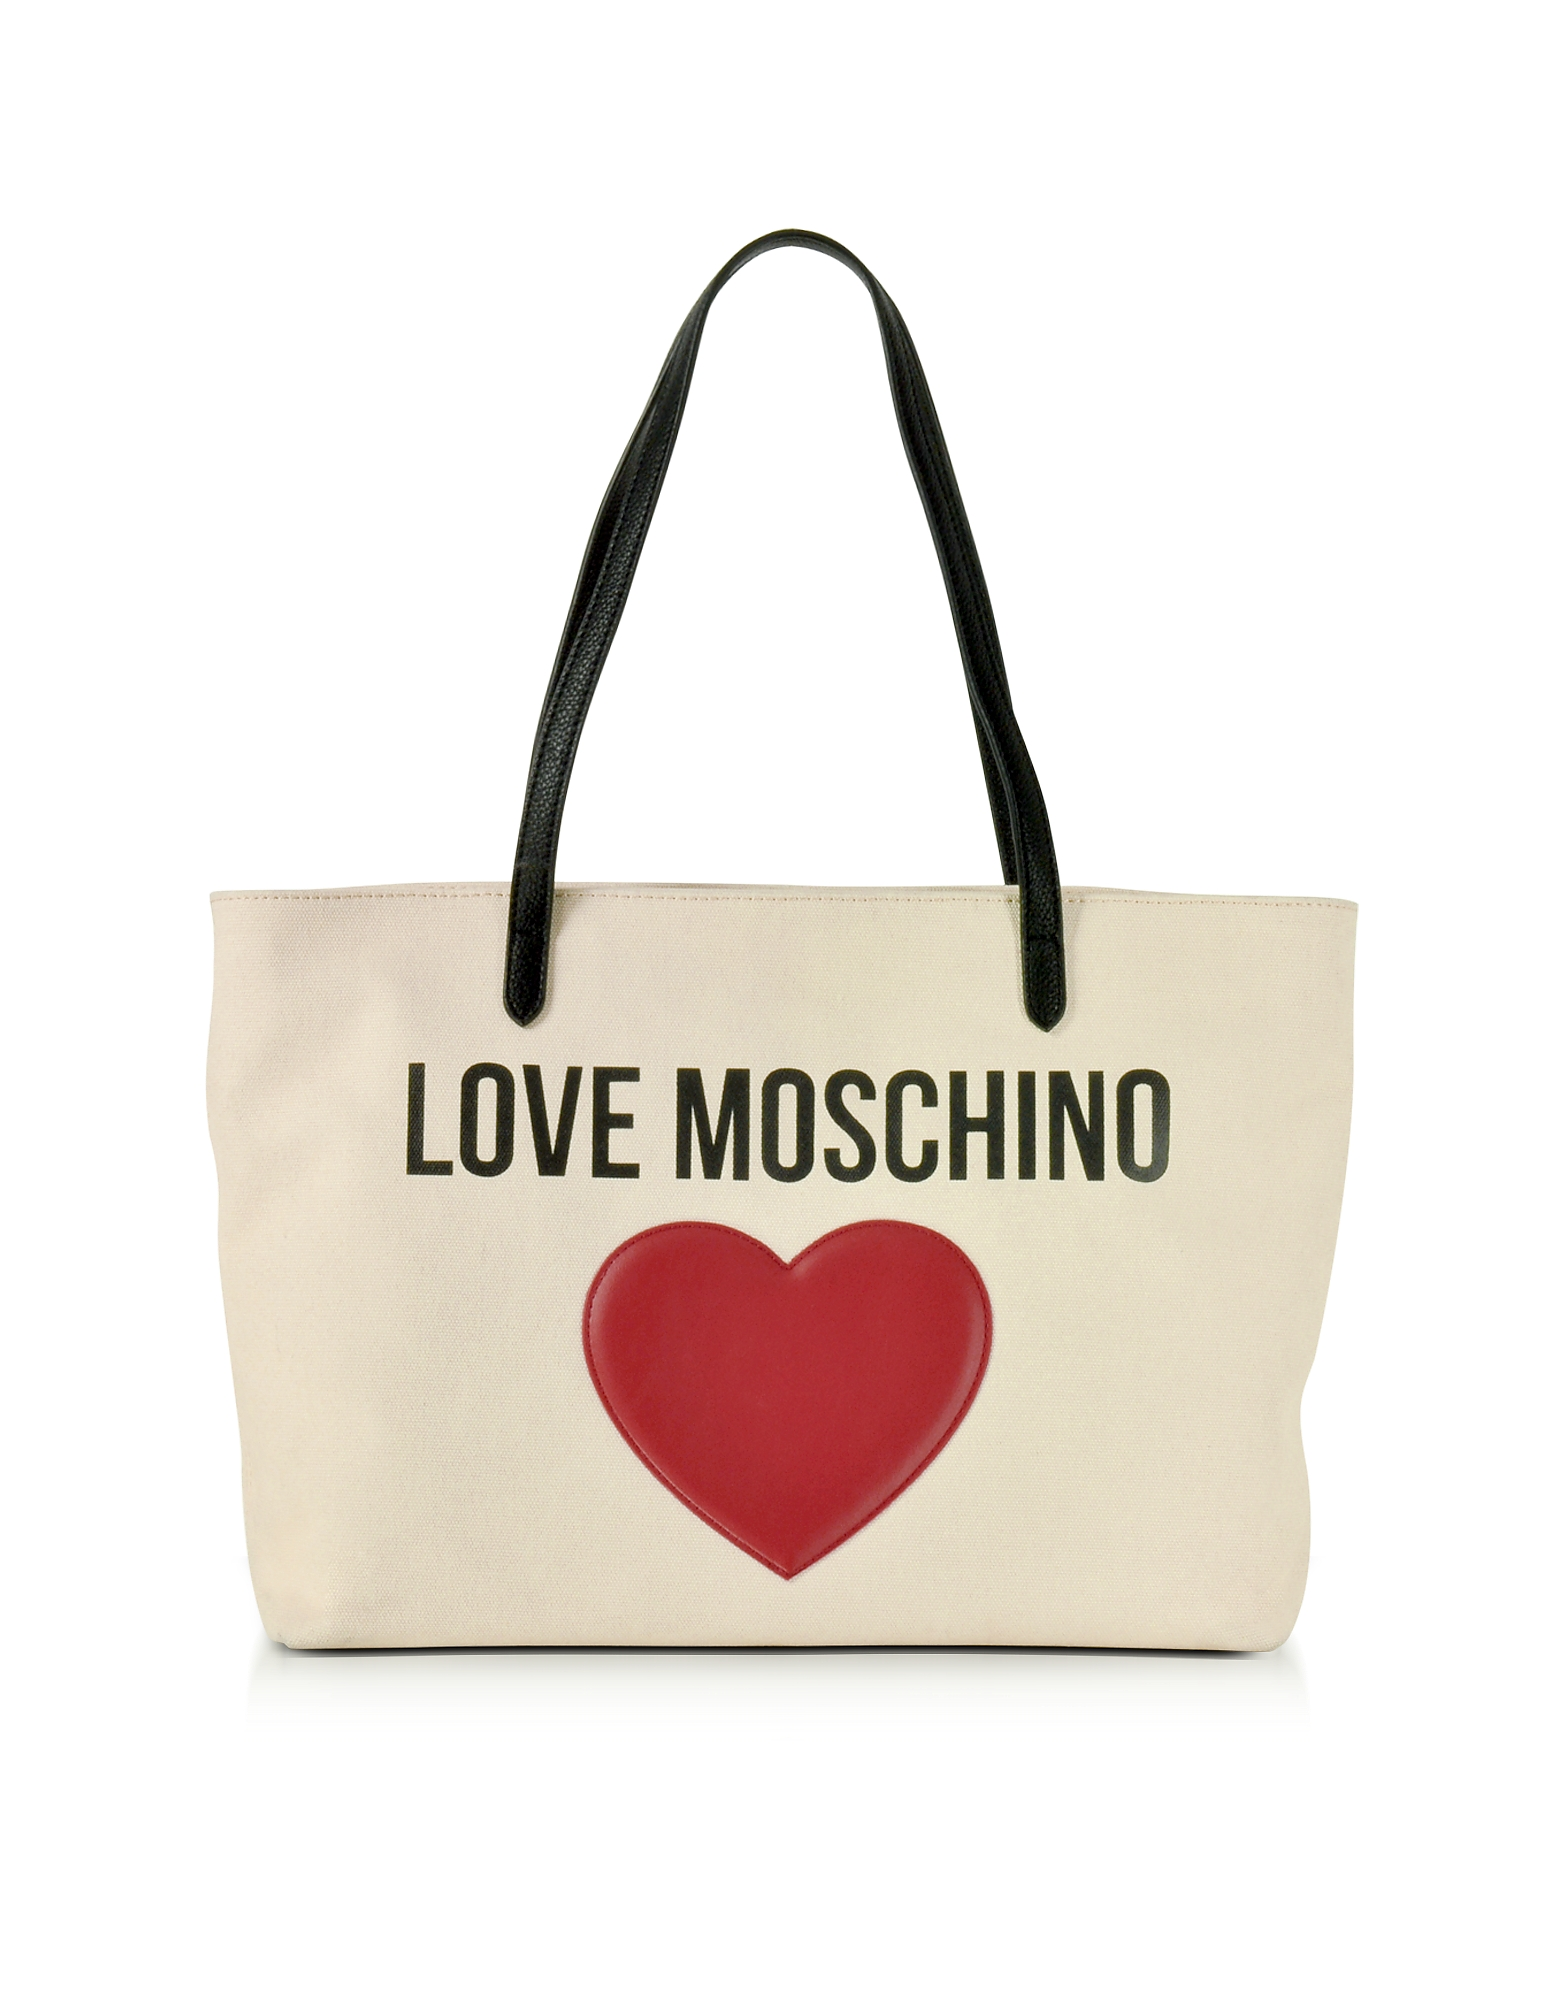 Love Moschino & Heart - Сумка Tote из Хлопка